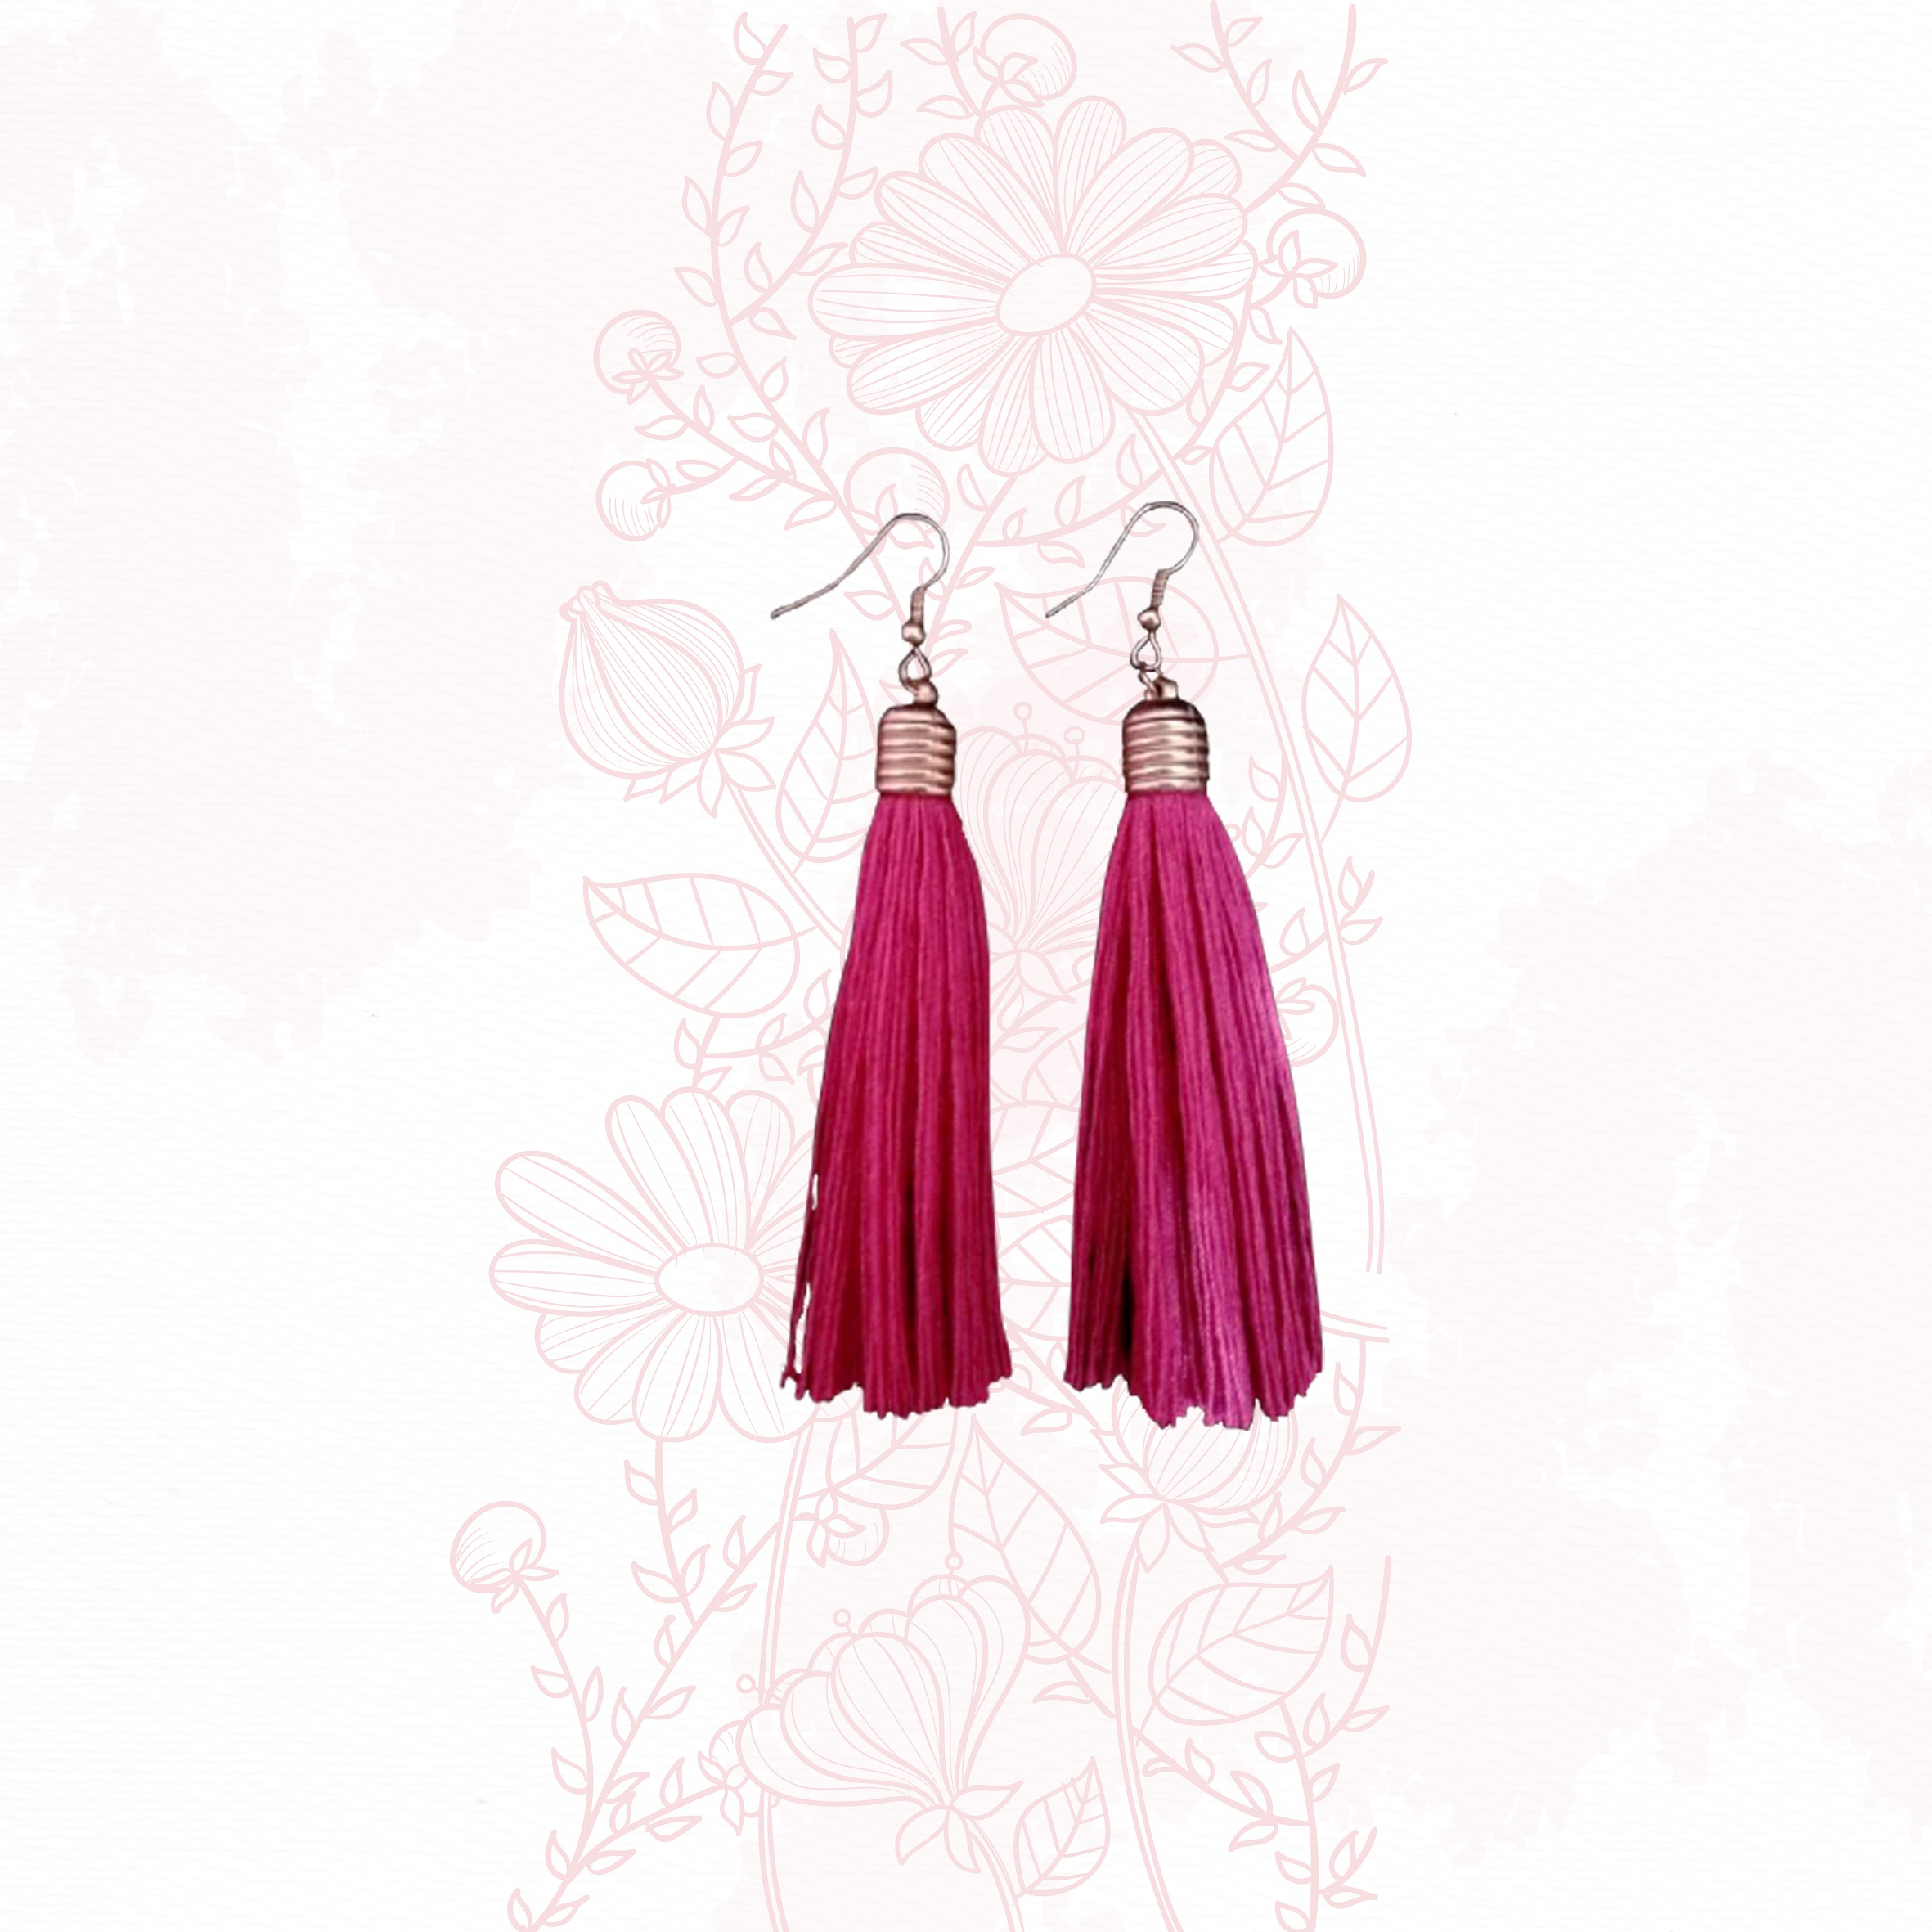 Anting ANTING HANDMADE - GOLD RUZ PINK / TASSEL / EARRINGS / EARRING